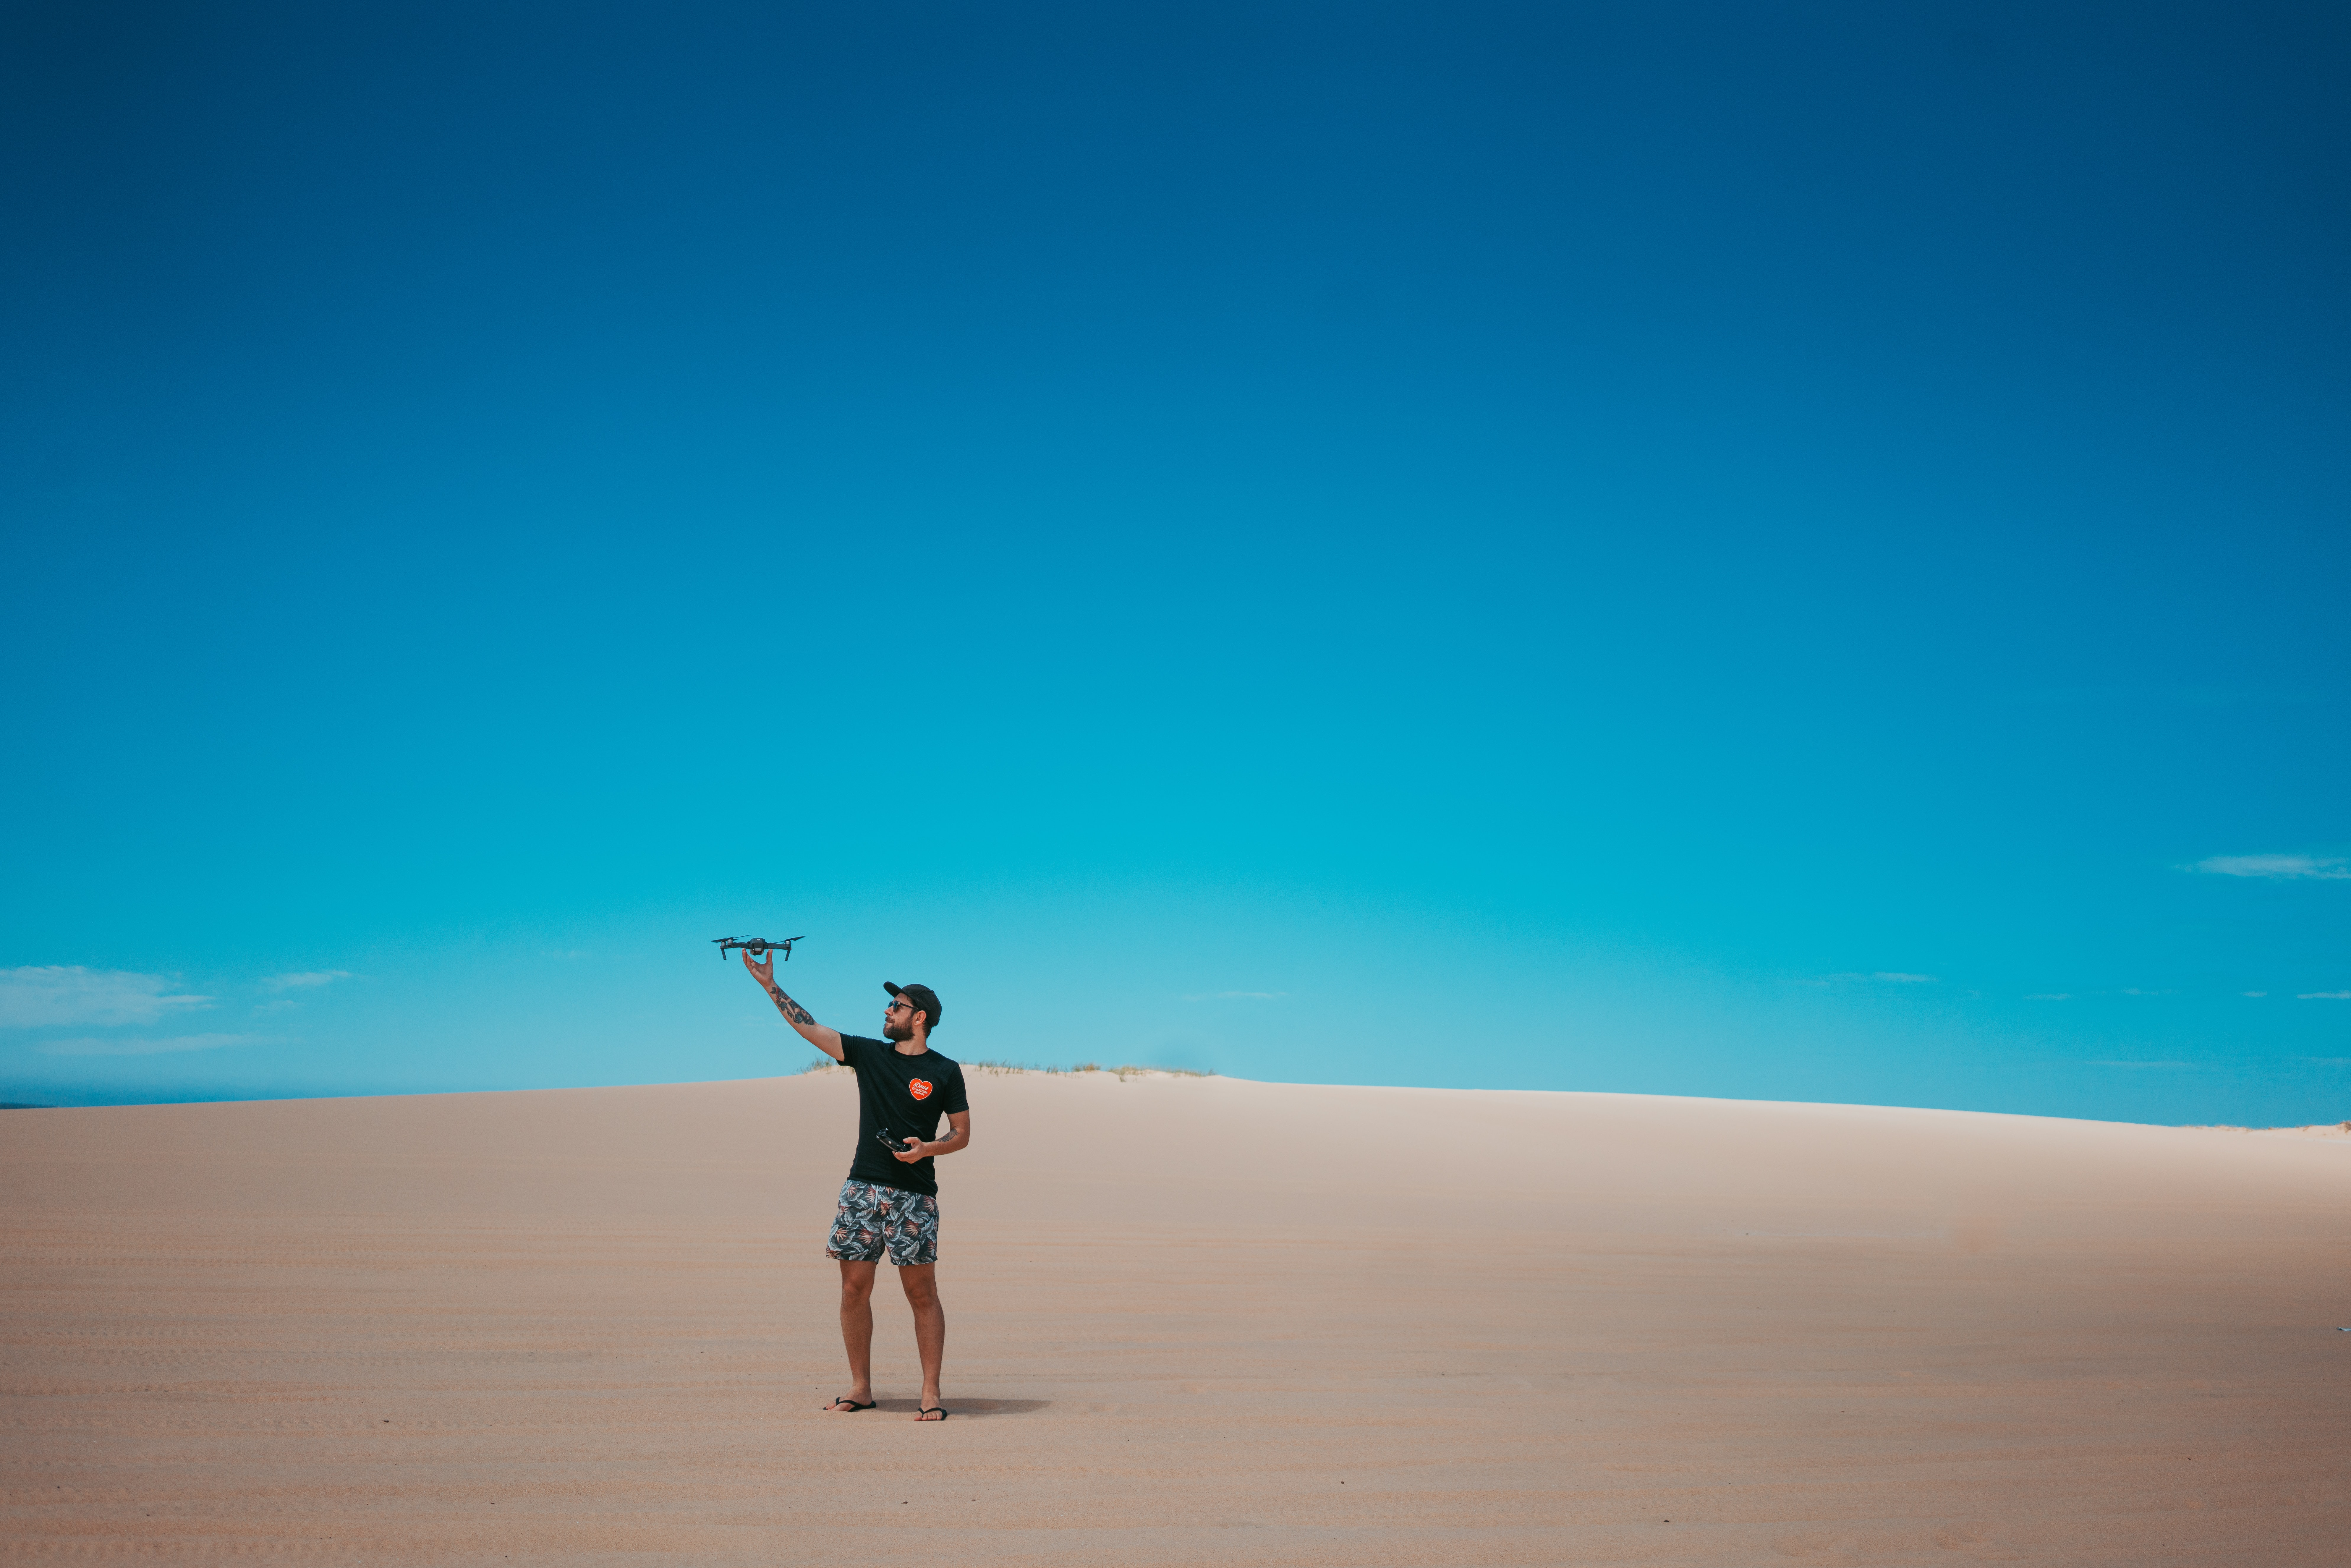 person standing on sand during daytime